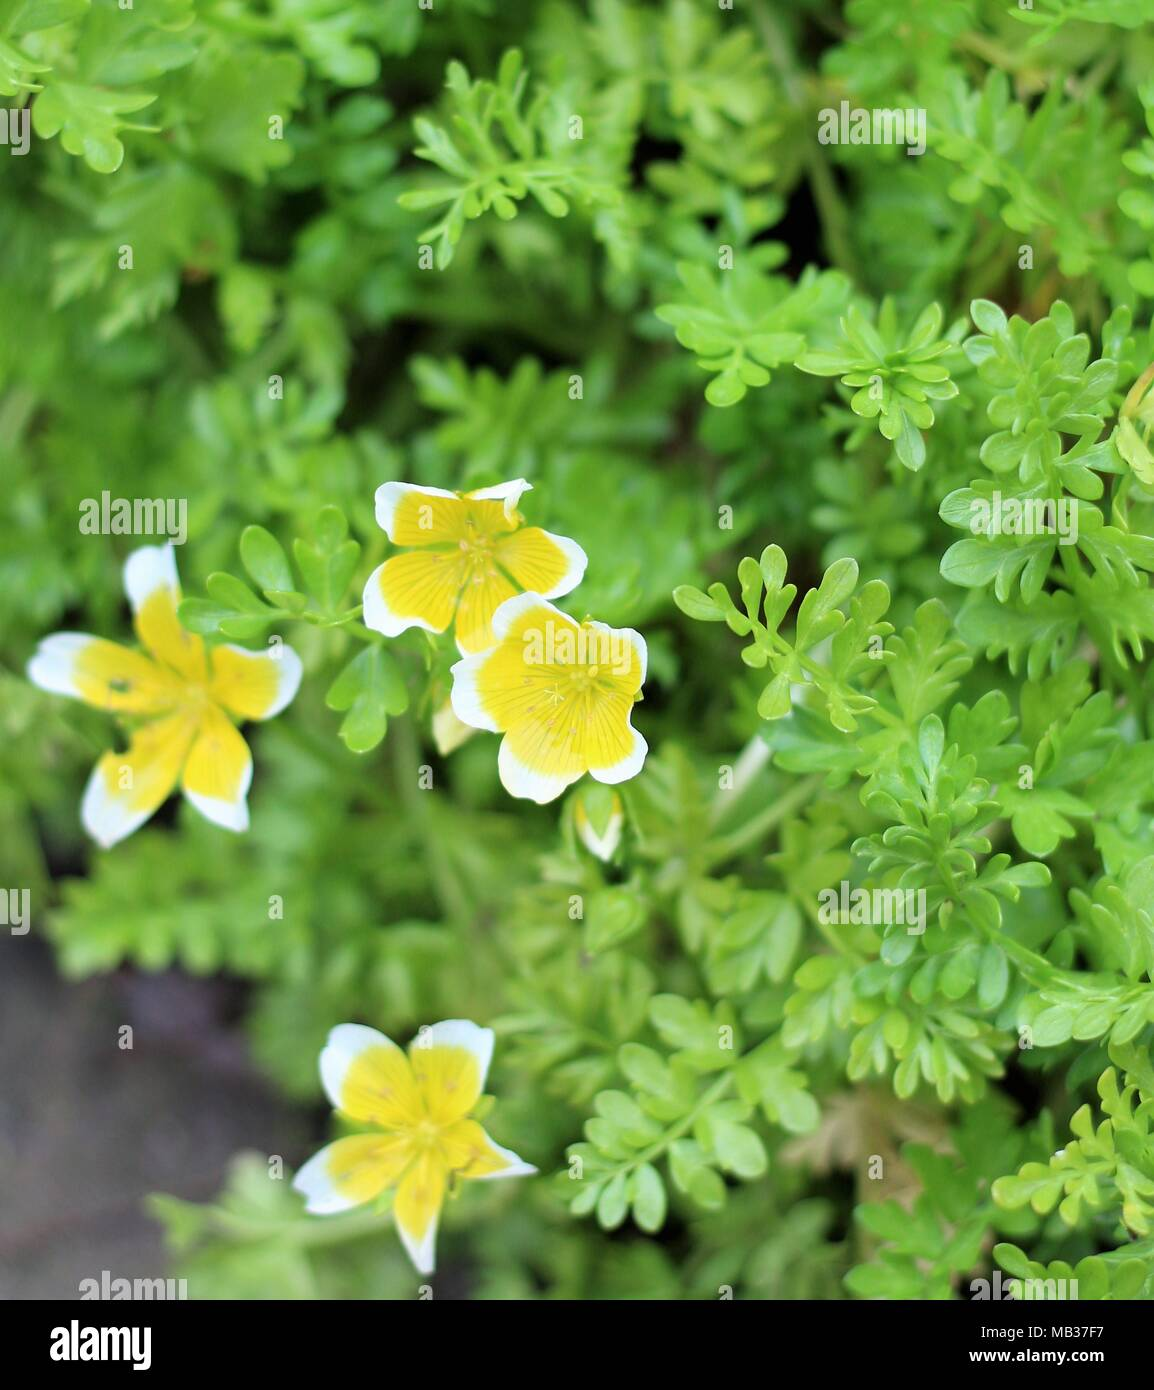 Cluster of Limnanthes douglasii, Douglas Meadowfoam plant. Fragrant, yellow-centre white flowers appear from summer through to spring. Suffolk, UK. - Stock Image